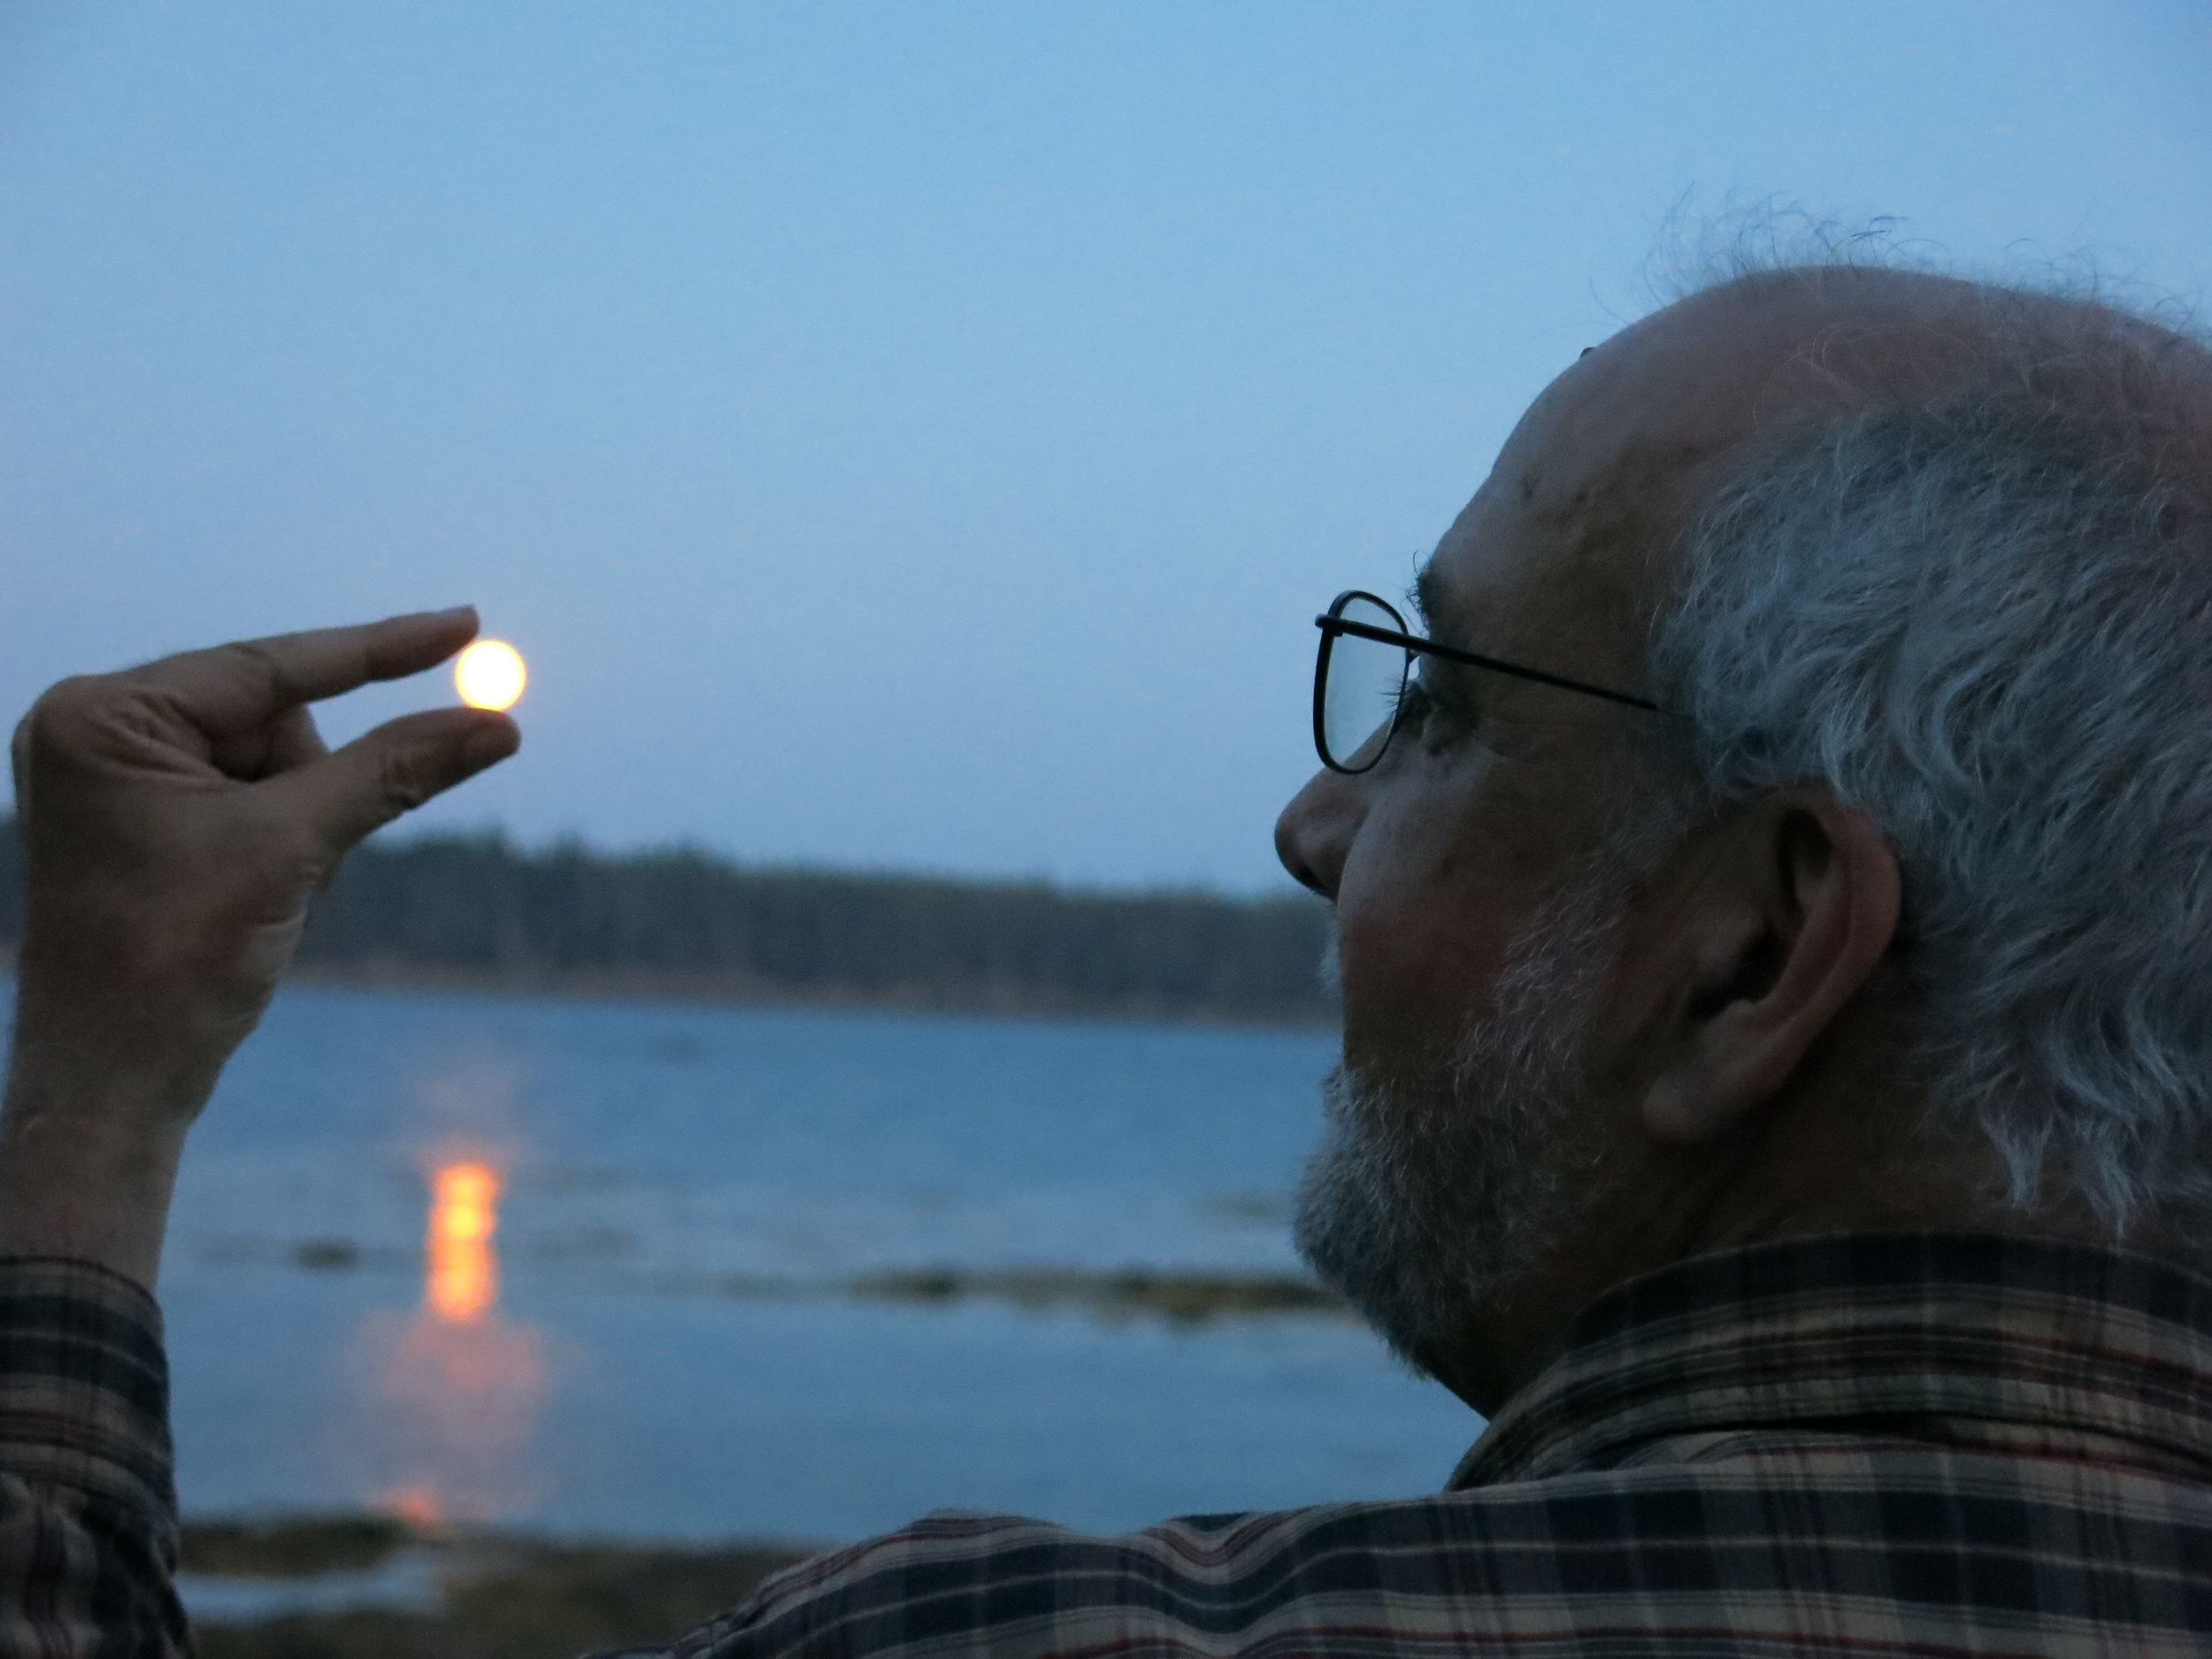 Dan McCoy of Pixar, who gave a Notebook talk on the making of the Oscar-nominated animated short La Luna, sized up La Luna while looking out from our Maine shoreline.